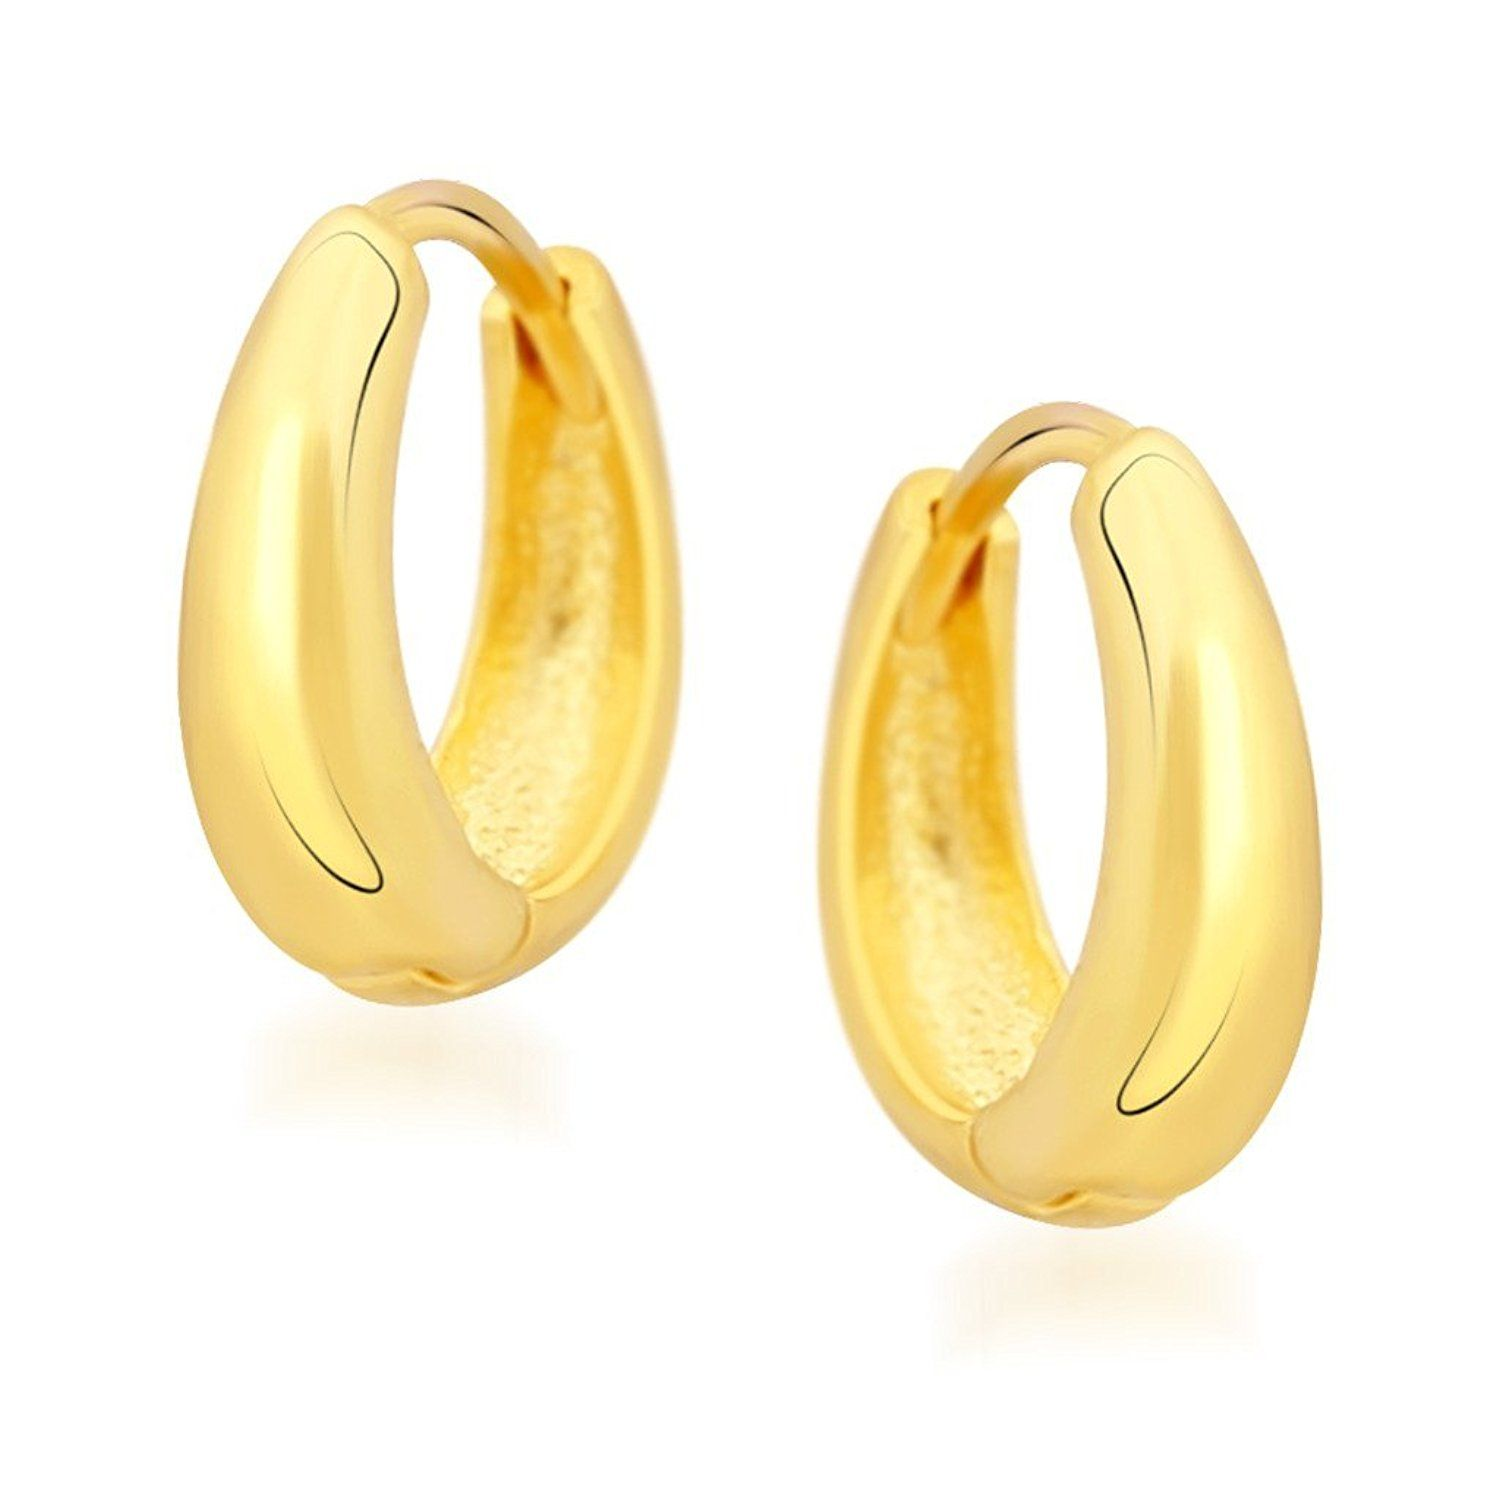 51vg4tsoc0l Ul1500 Jpg Jpeg Image 1500 1500 Pixels Scaled 61 Mens Rose Gold Wedding Ring Gold Earrings For Men Online Earrings